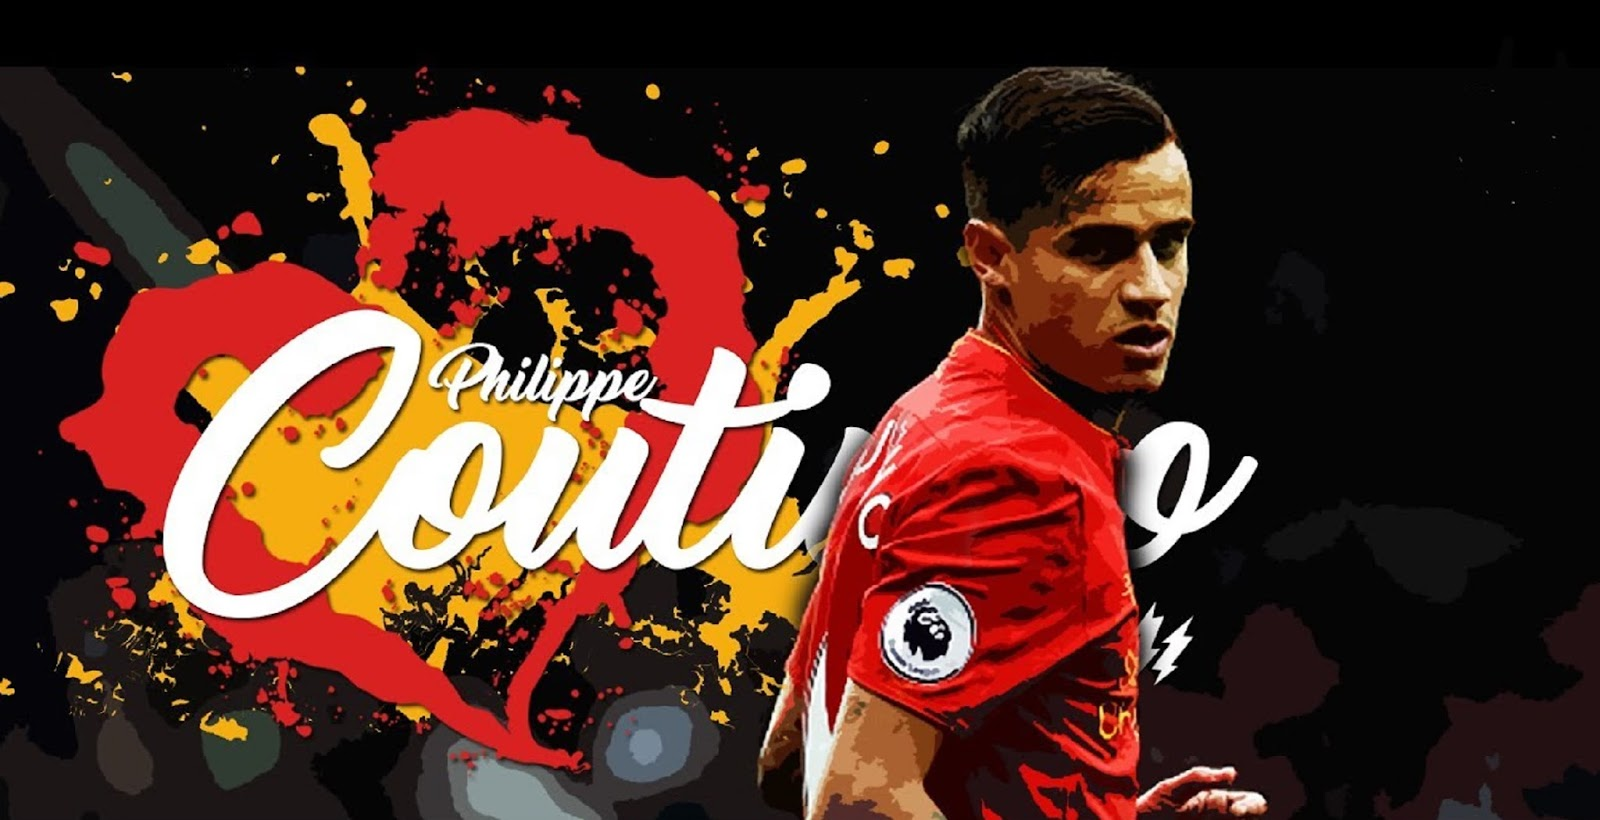 PHILIPPE COUTINHO 11